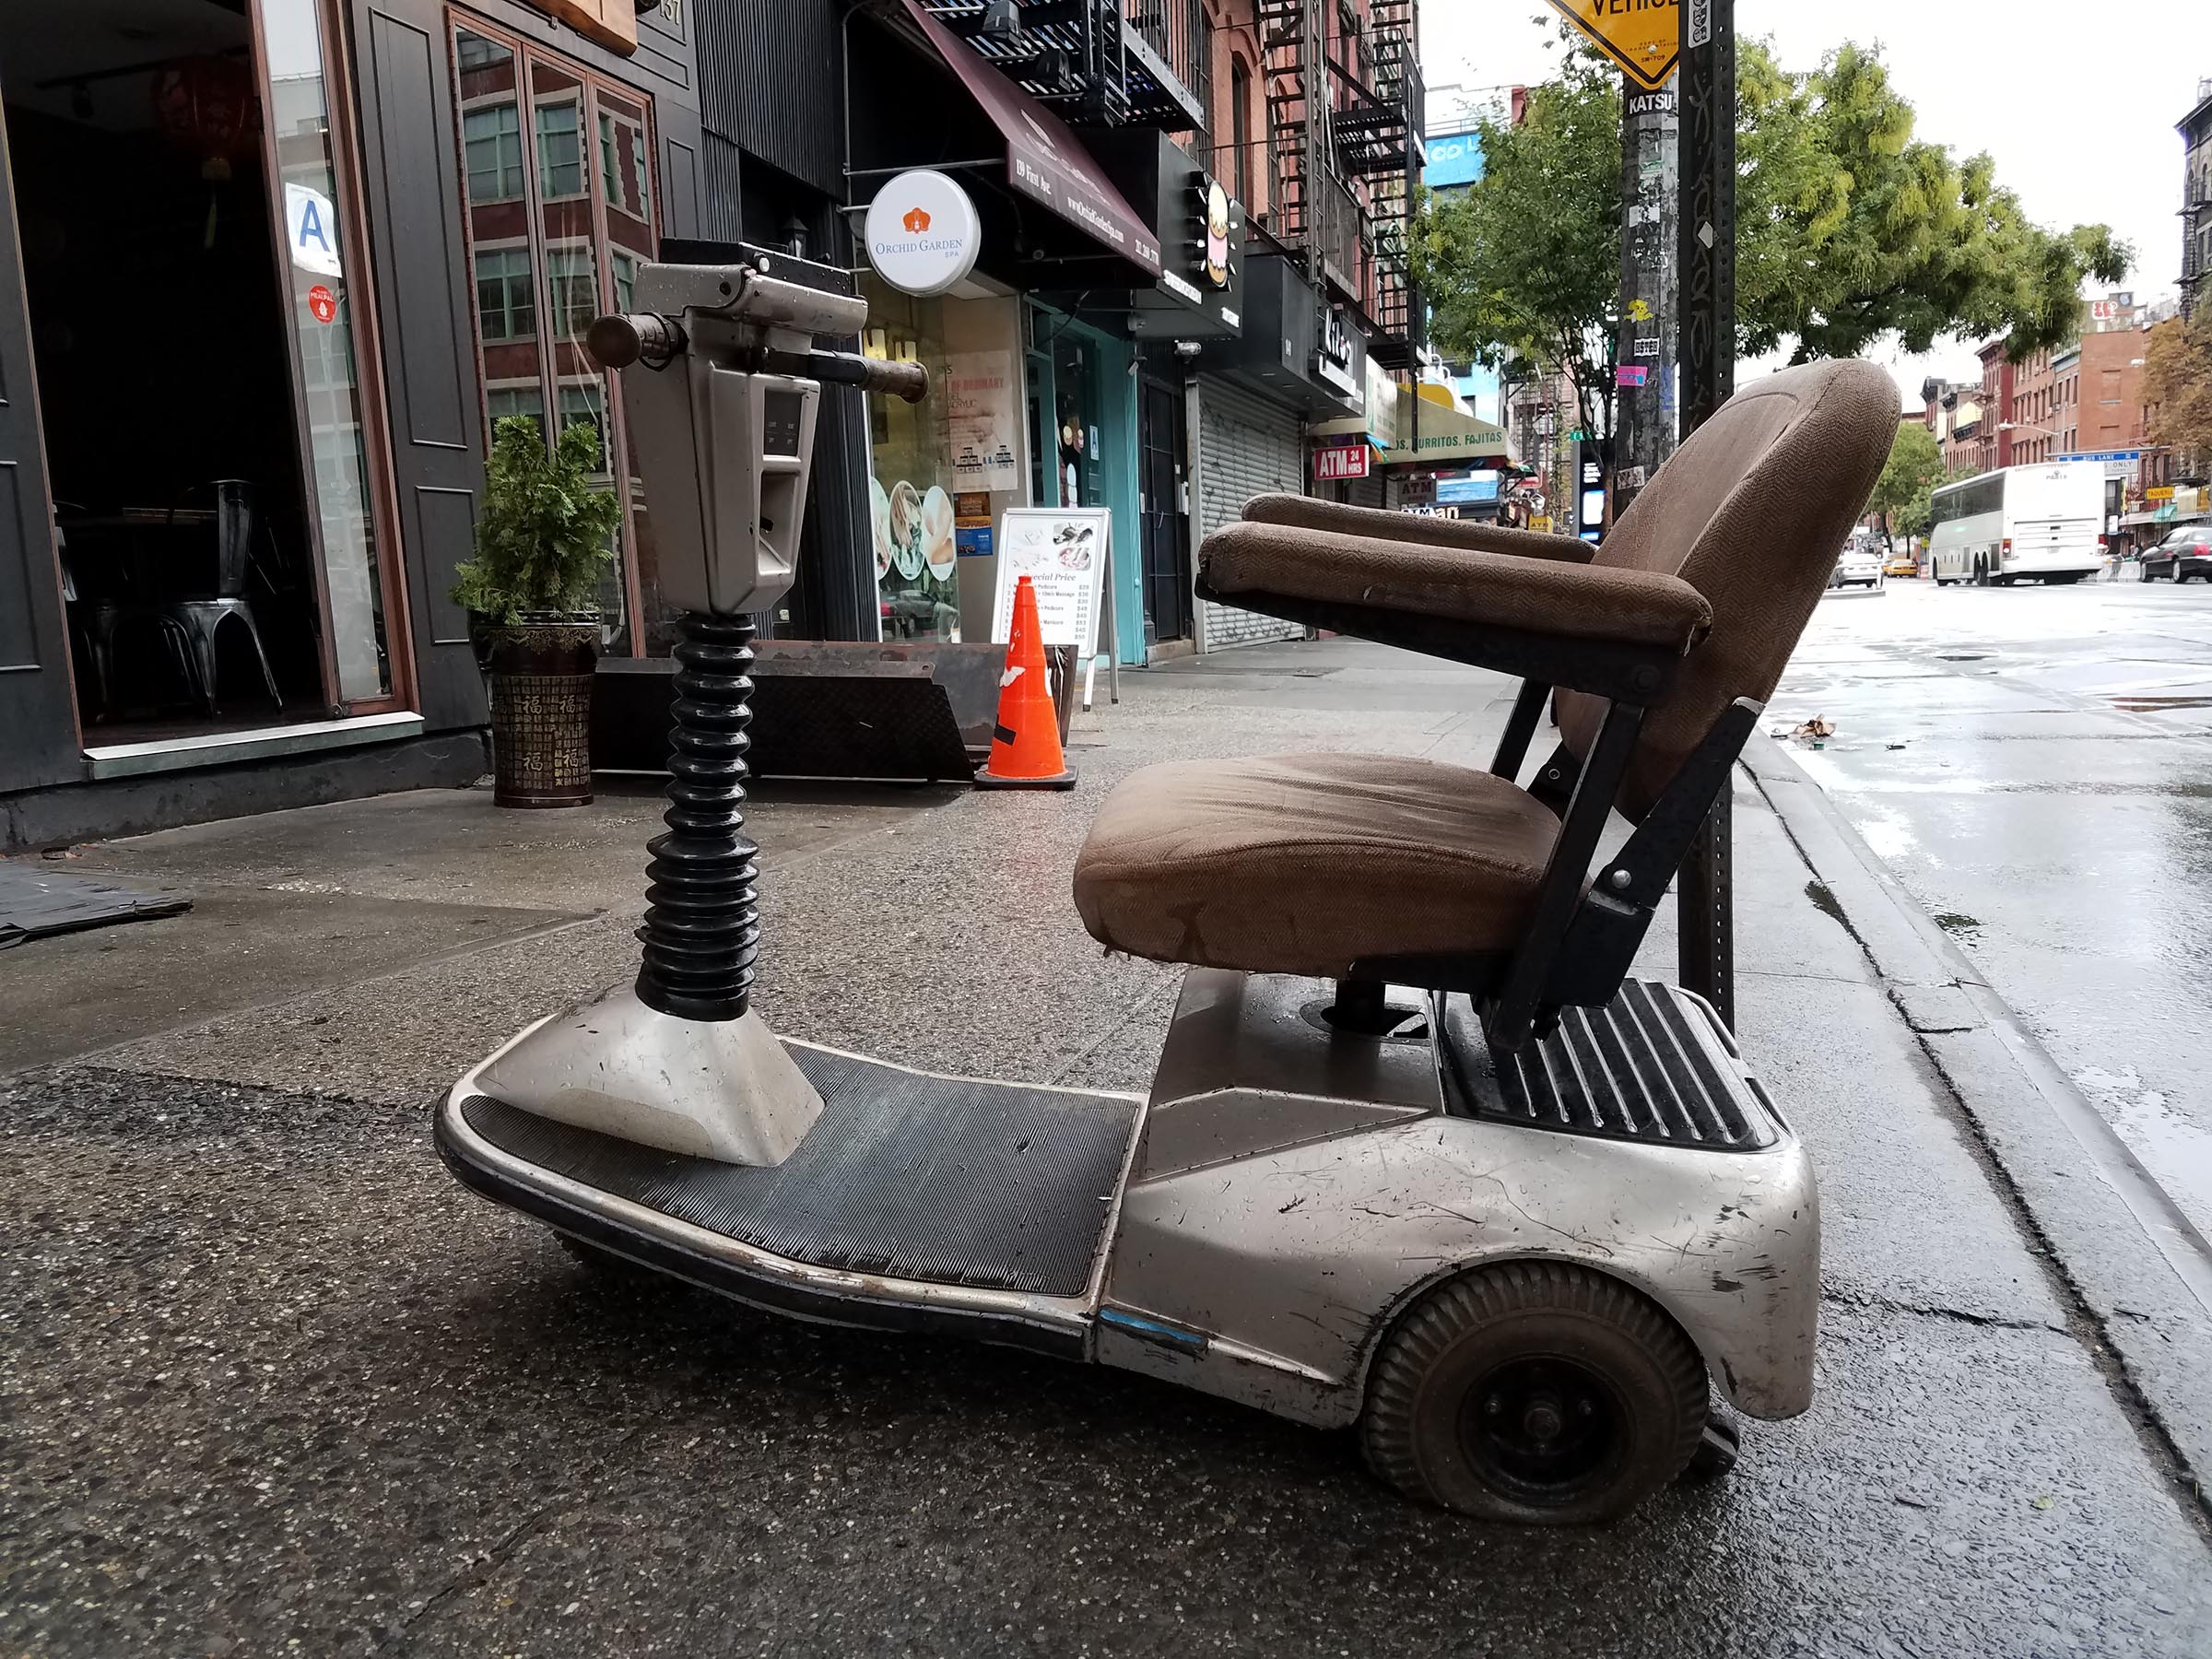 A beige, beat-up sit-down scooter with a flat tire, parked at an odd angle on the sidewalk. The concrete is slick with recent rain.